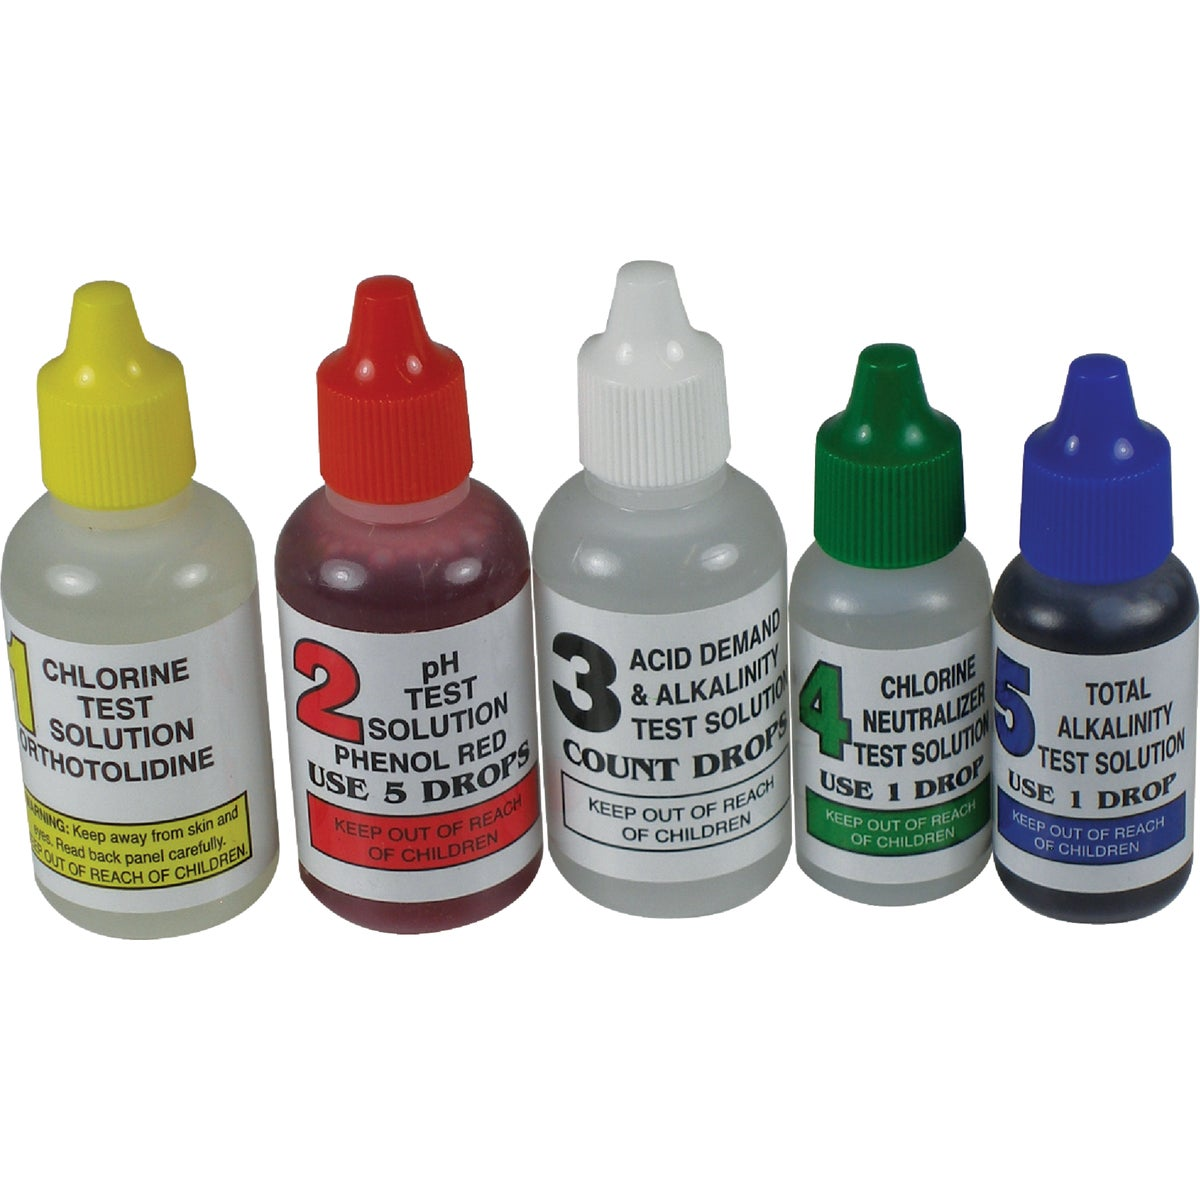 5-WAY REFILL TEST KIT - 00-330 by Jed Pool